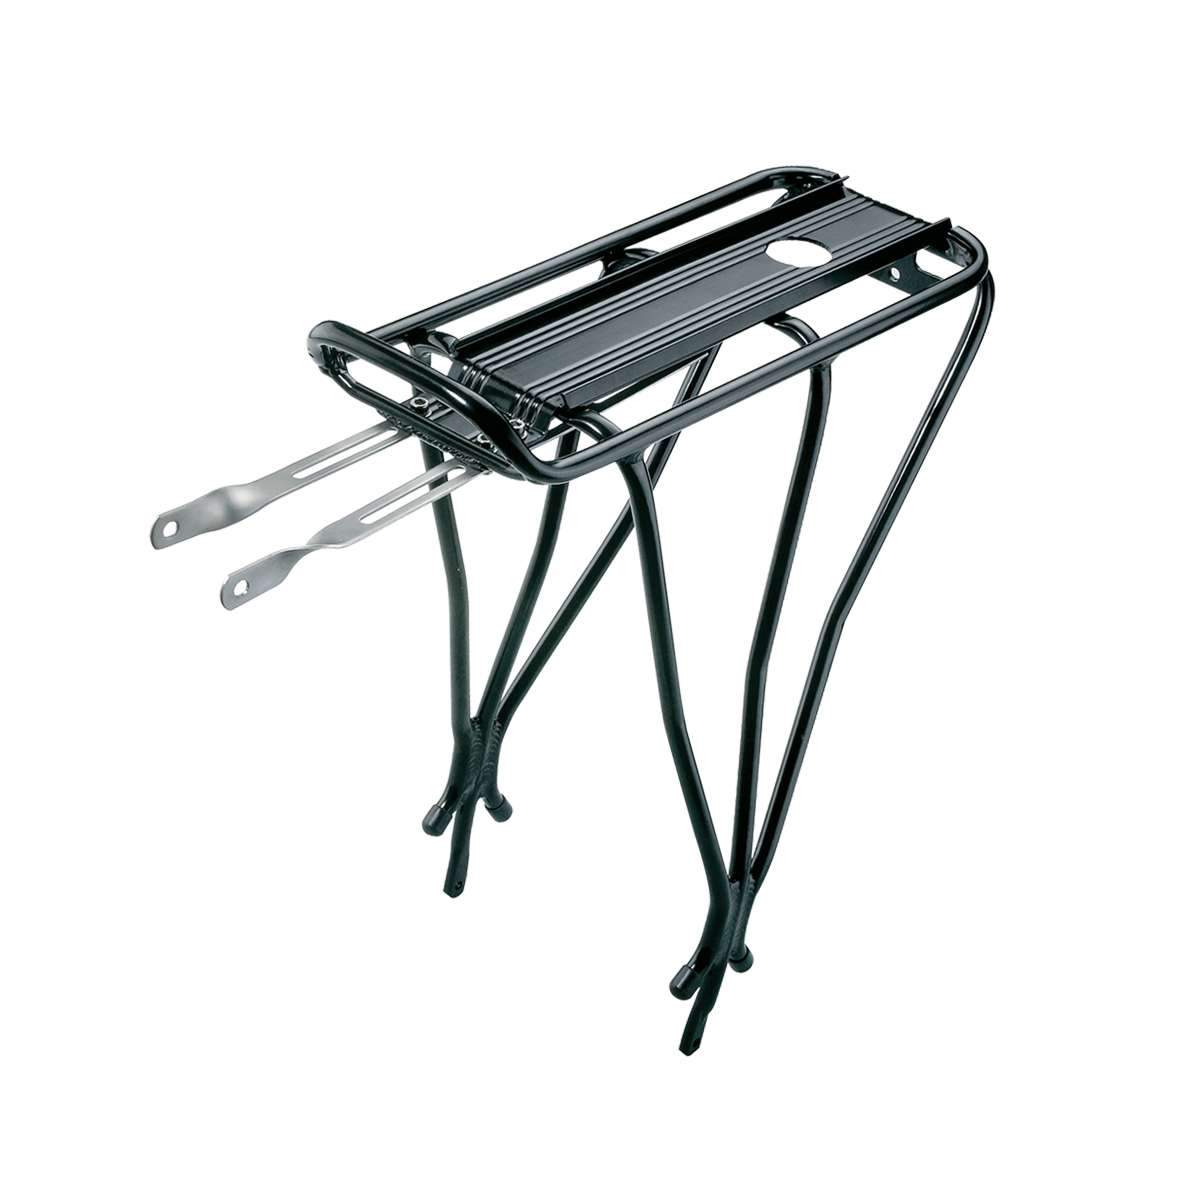 Topeak Babyseat II Rack - None Disc